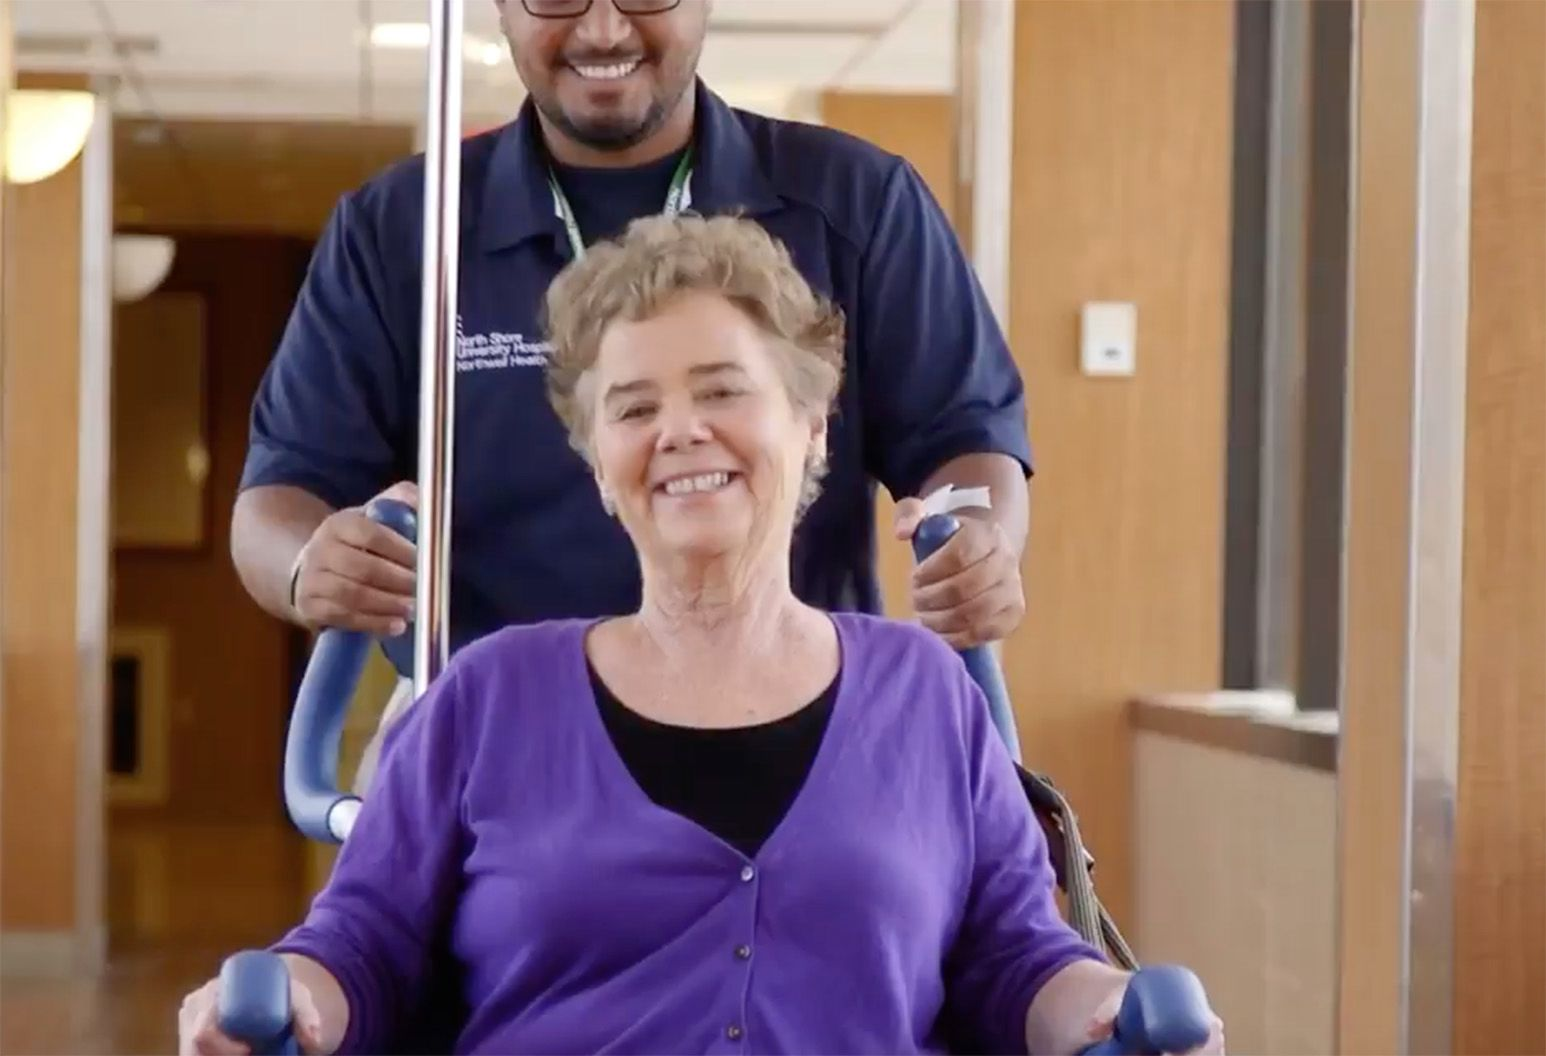 A smiling man in glasses and a navy polo shirt pushes a smiling elderly woman in a wheelchair.